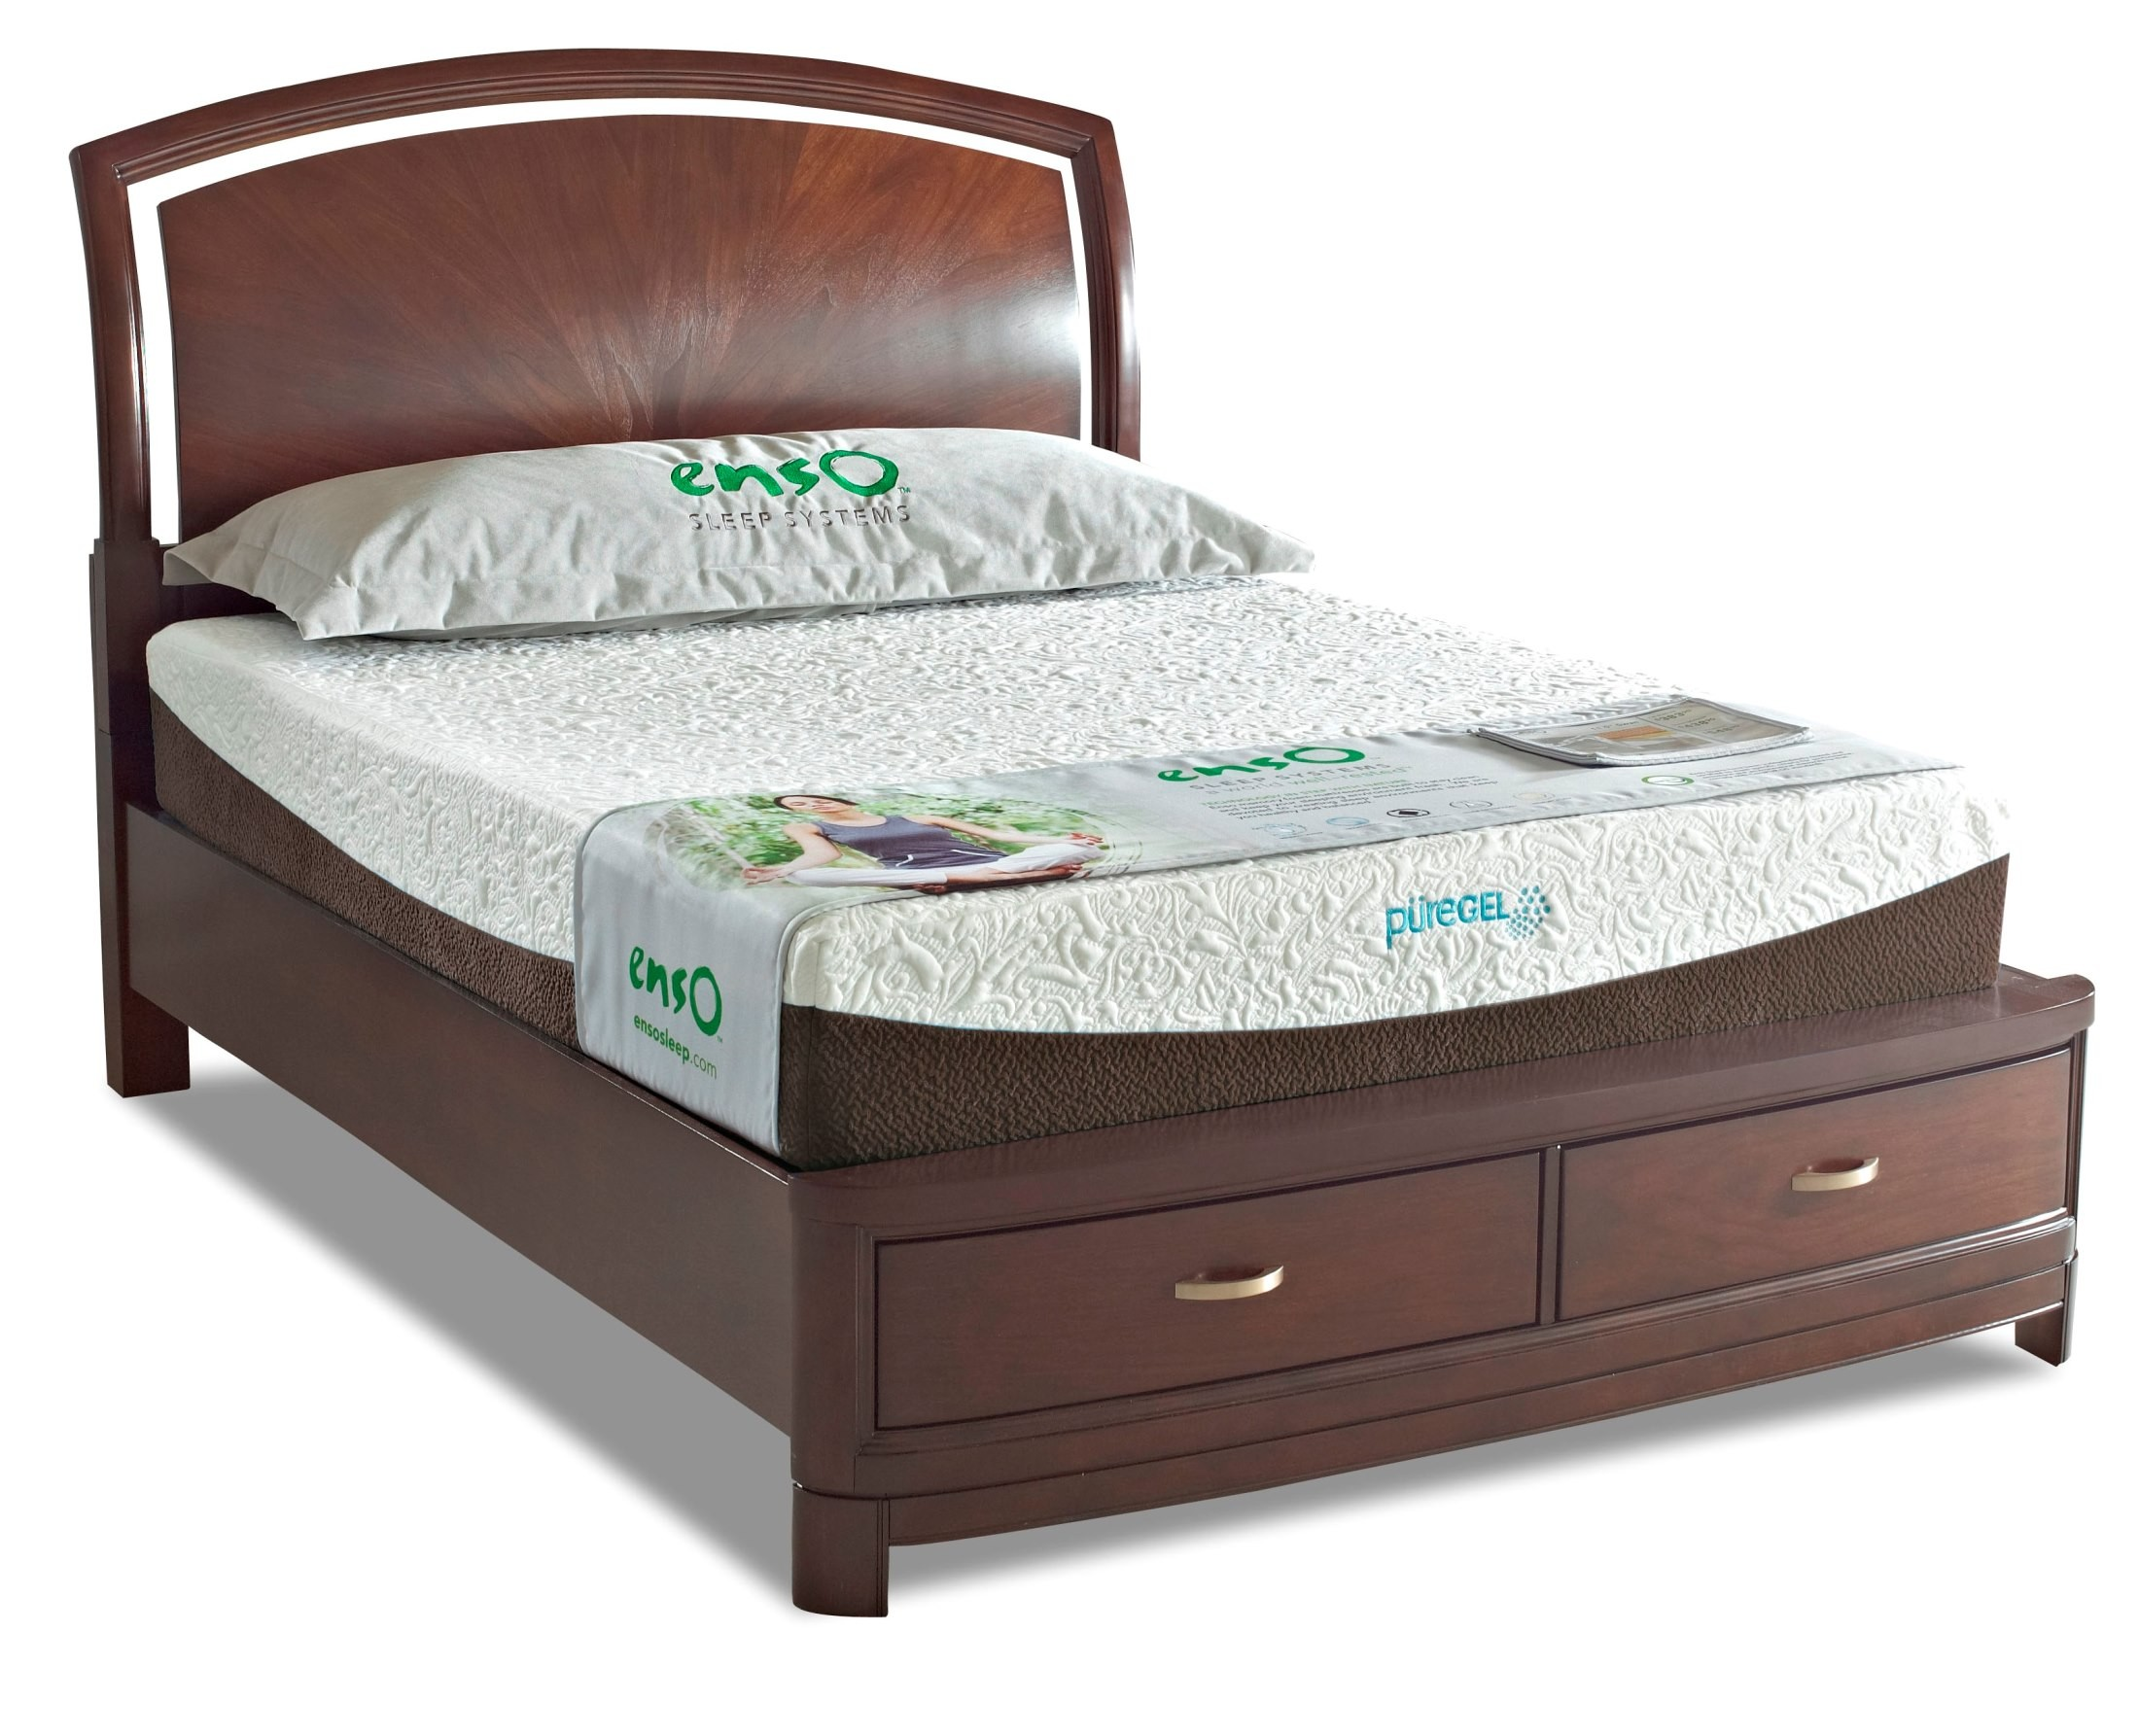 Denali 10 memory foam xl twin size mattress from klaussner denalitxltmat coleman furniture Twin mattress xl